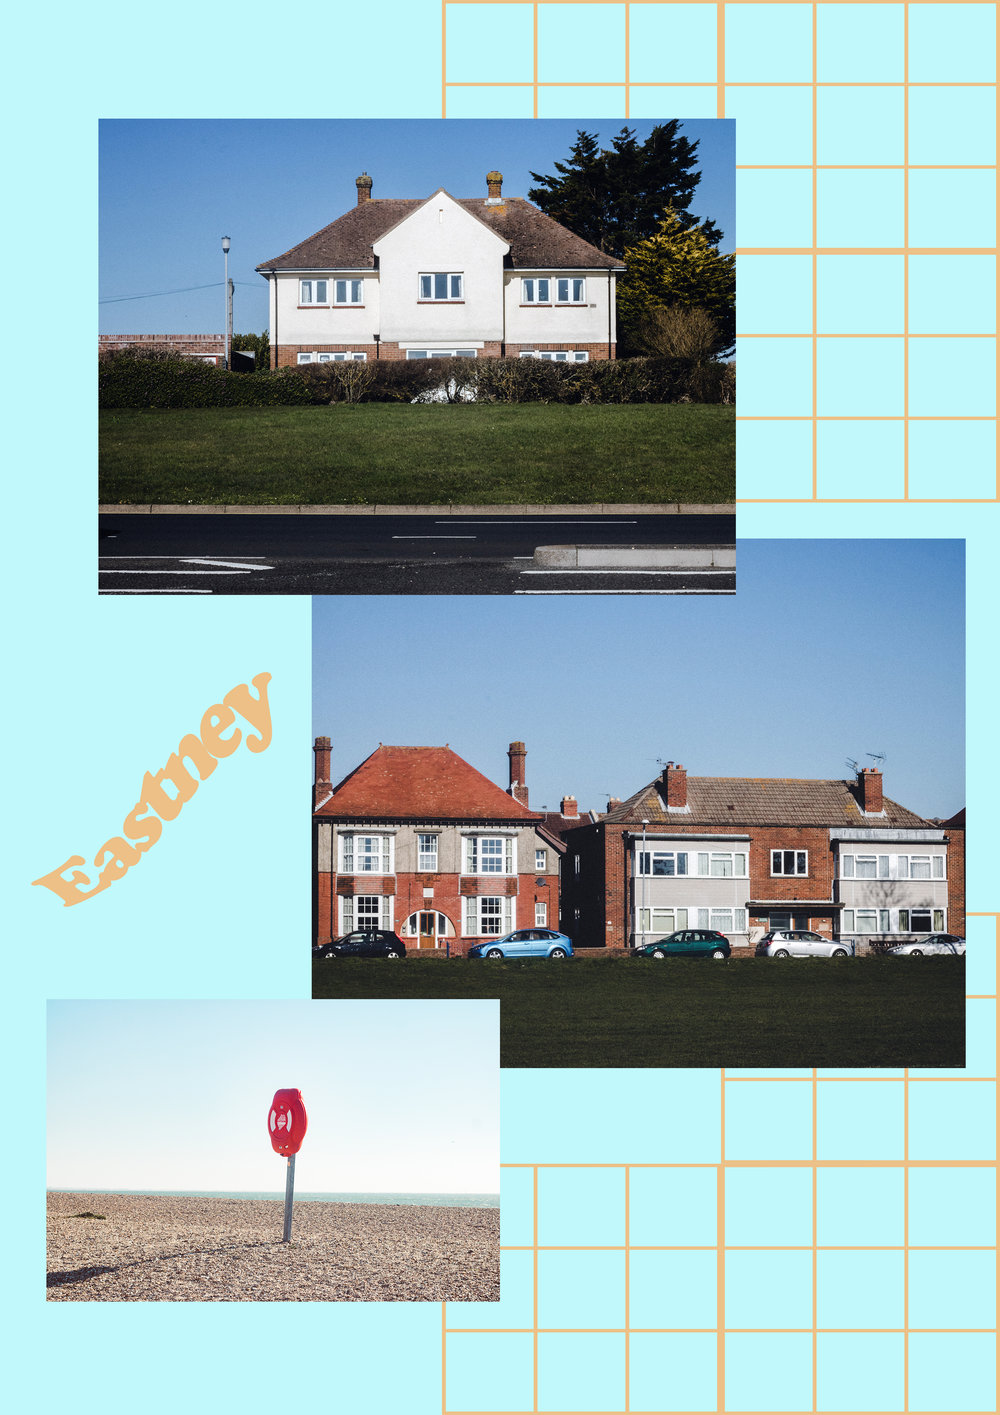 eastney.jpg